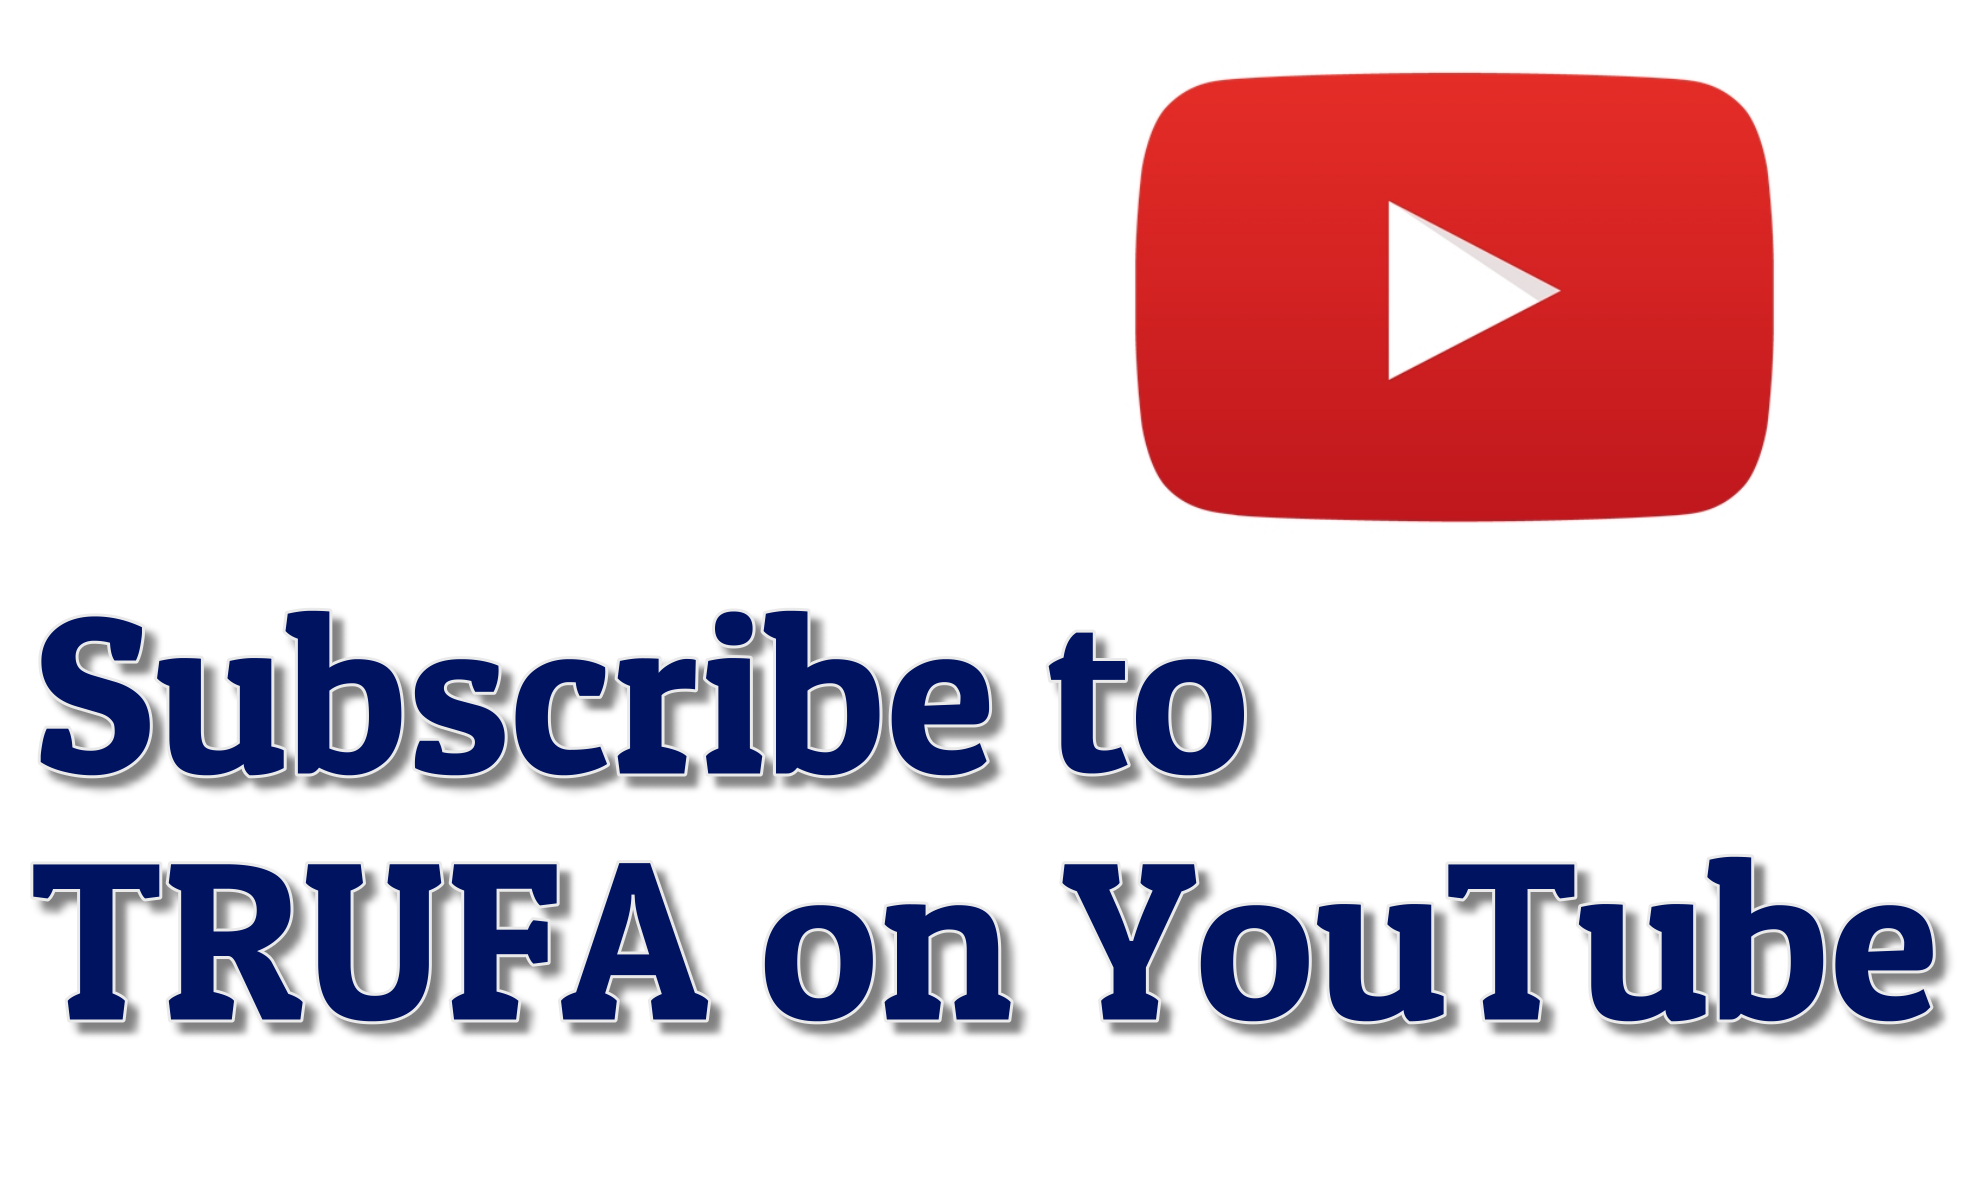 TRUFA on YouTube